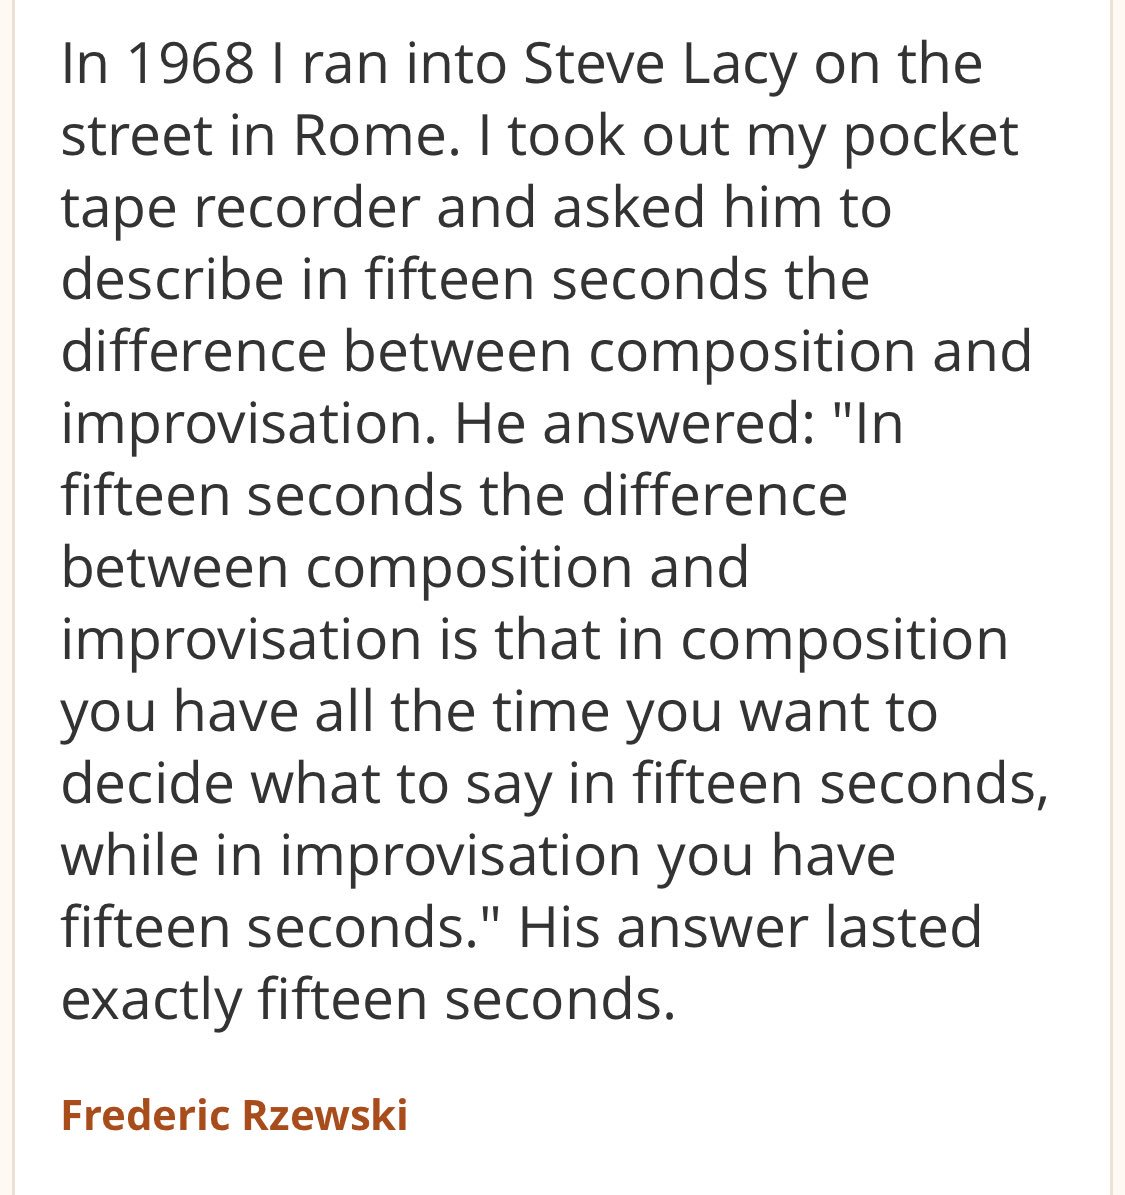 The greatest conversation between two musicians ever. Ever. Like...ever. https://t.co/3aTOOpUKY0